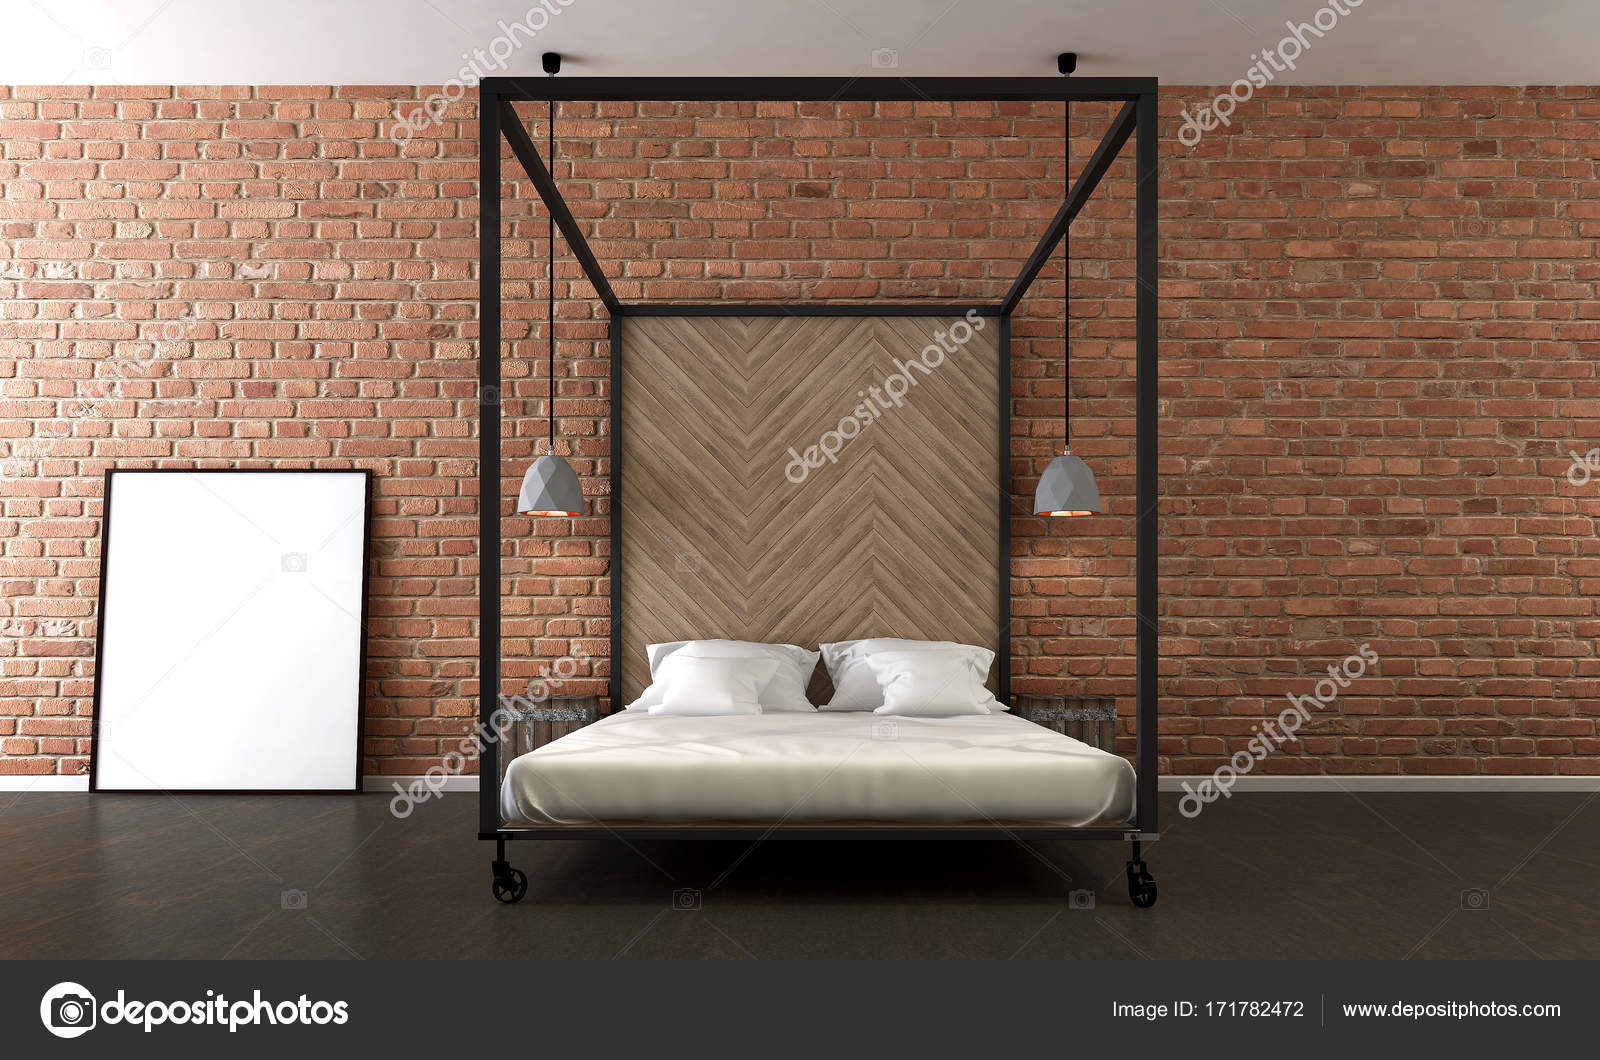 The Interiors Design Of Minimal Bedroom And Red Brick Wall Texture Background Stock Photo C Teeraphan 171782472